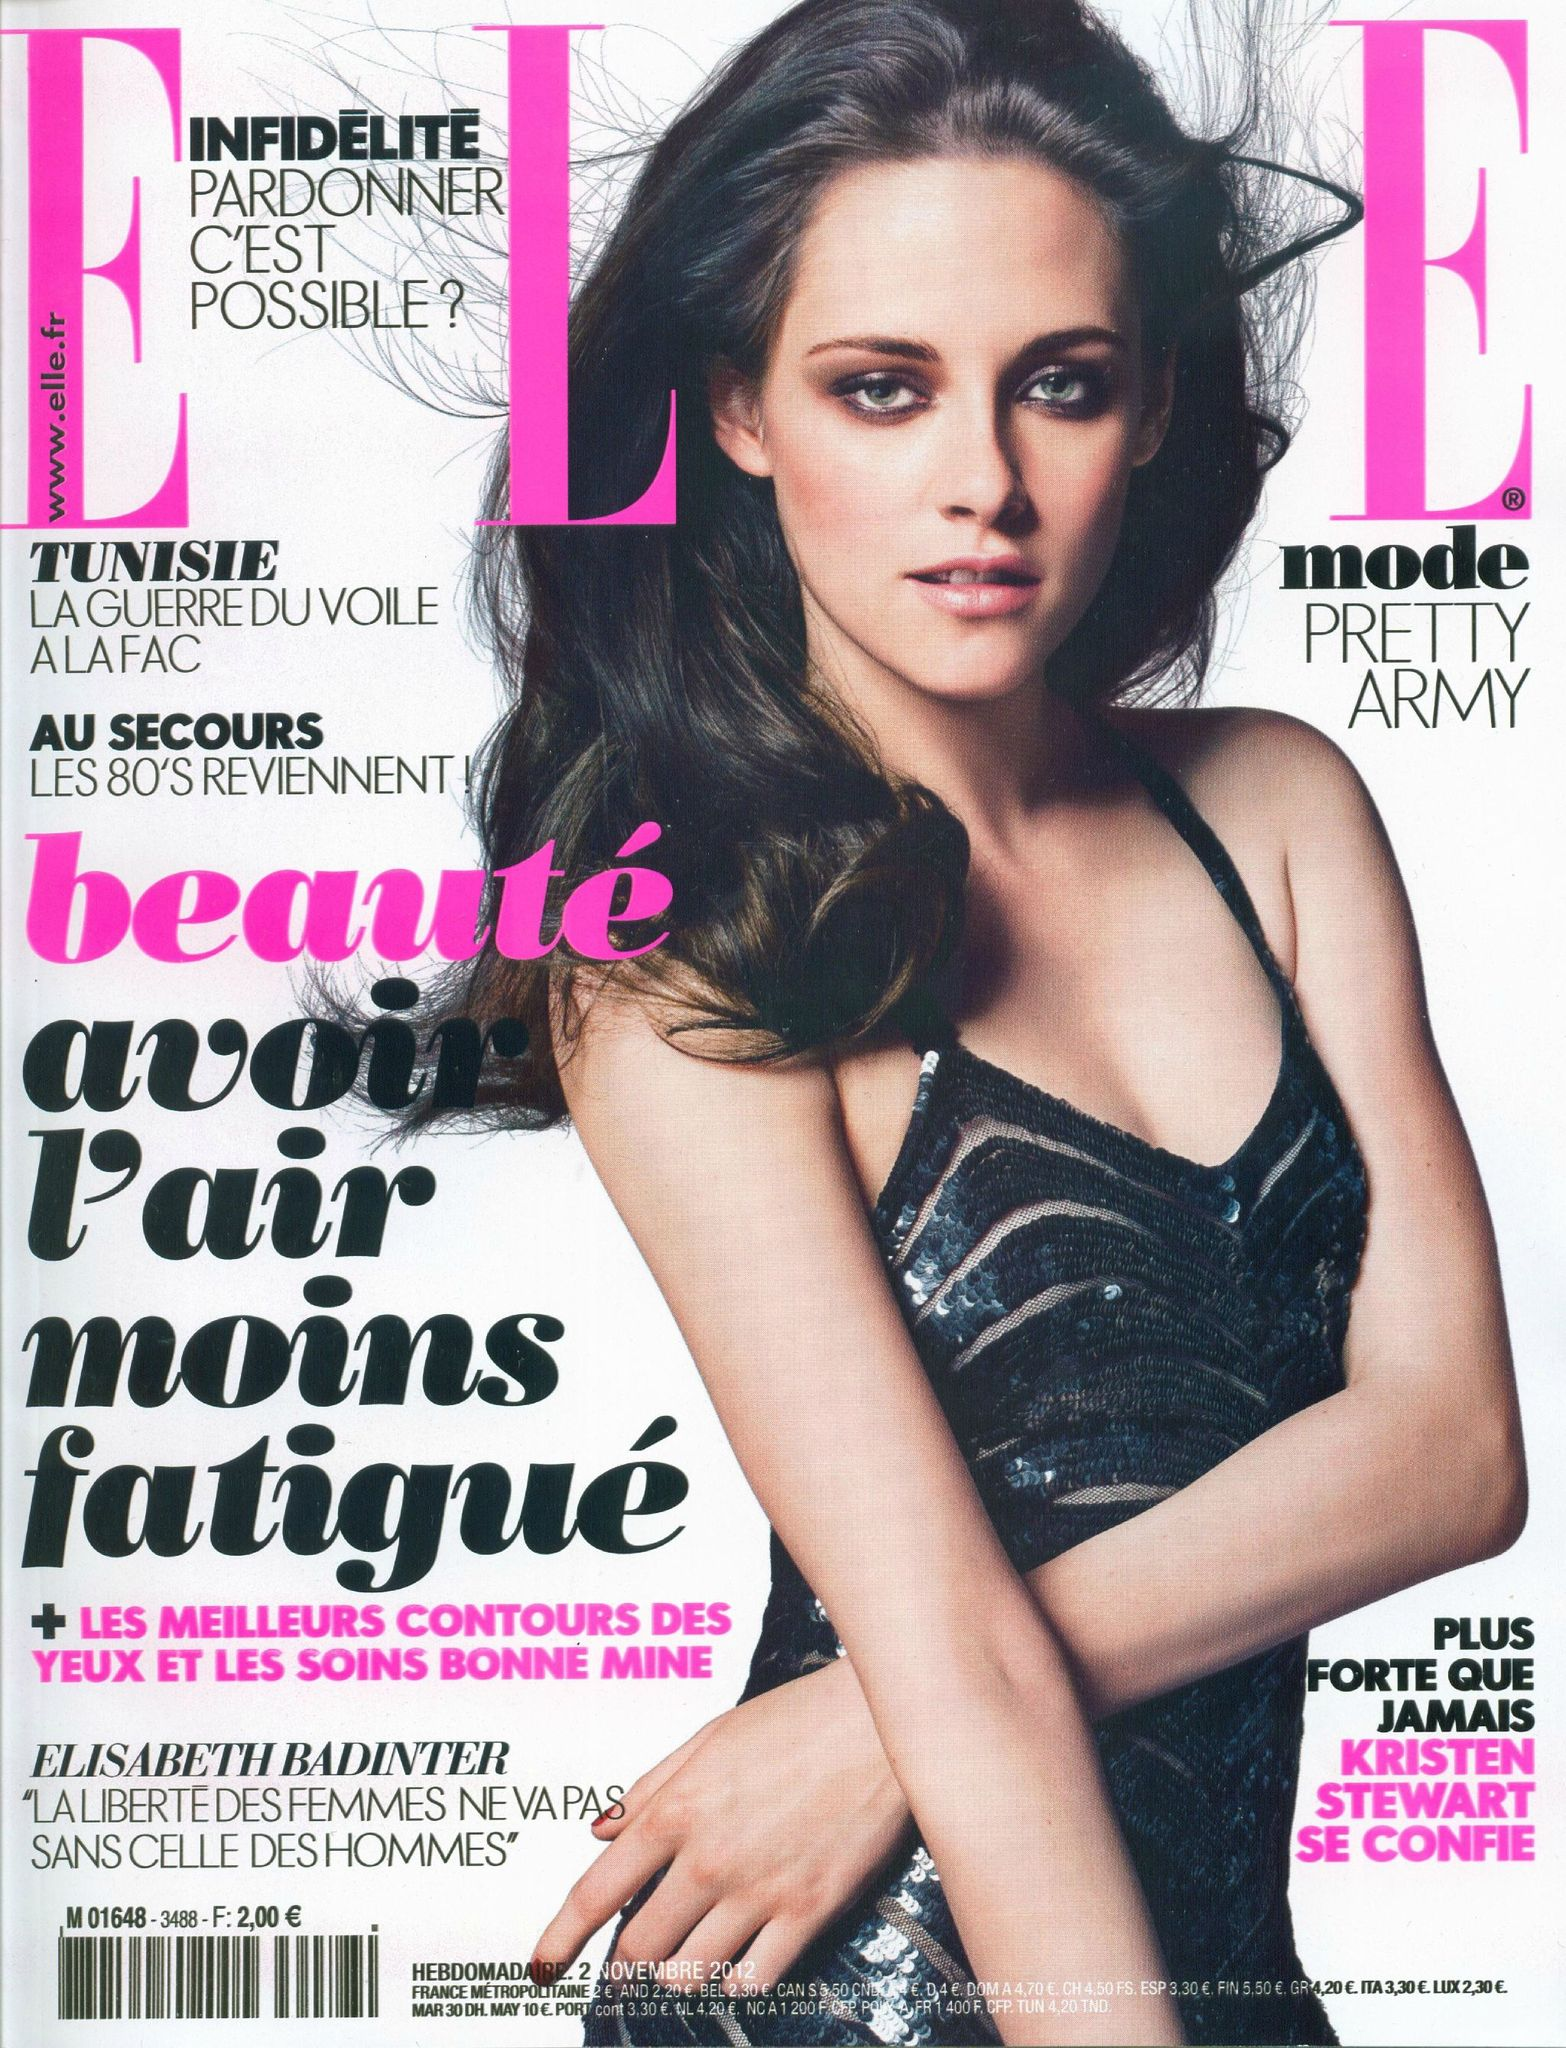 Twilight en couverture des magazines + News diverses - Le monde de ... Breakingdawn